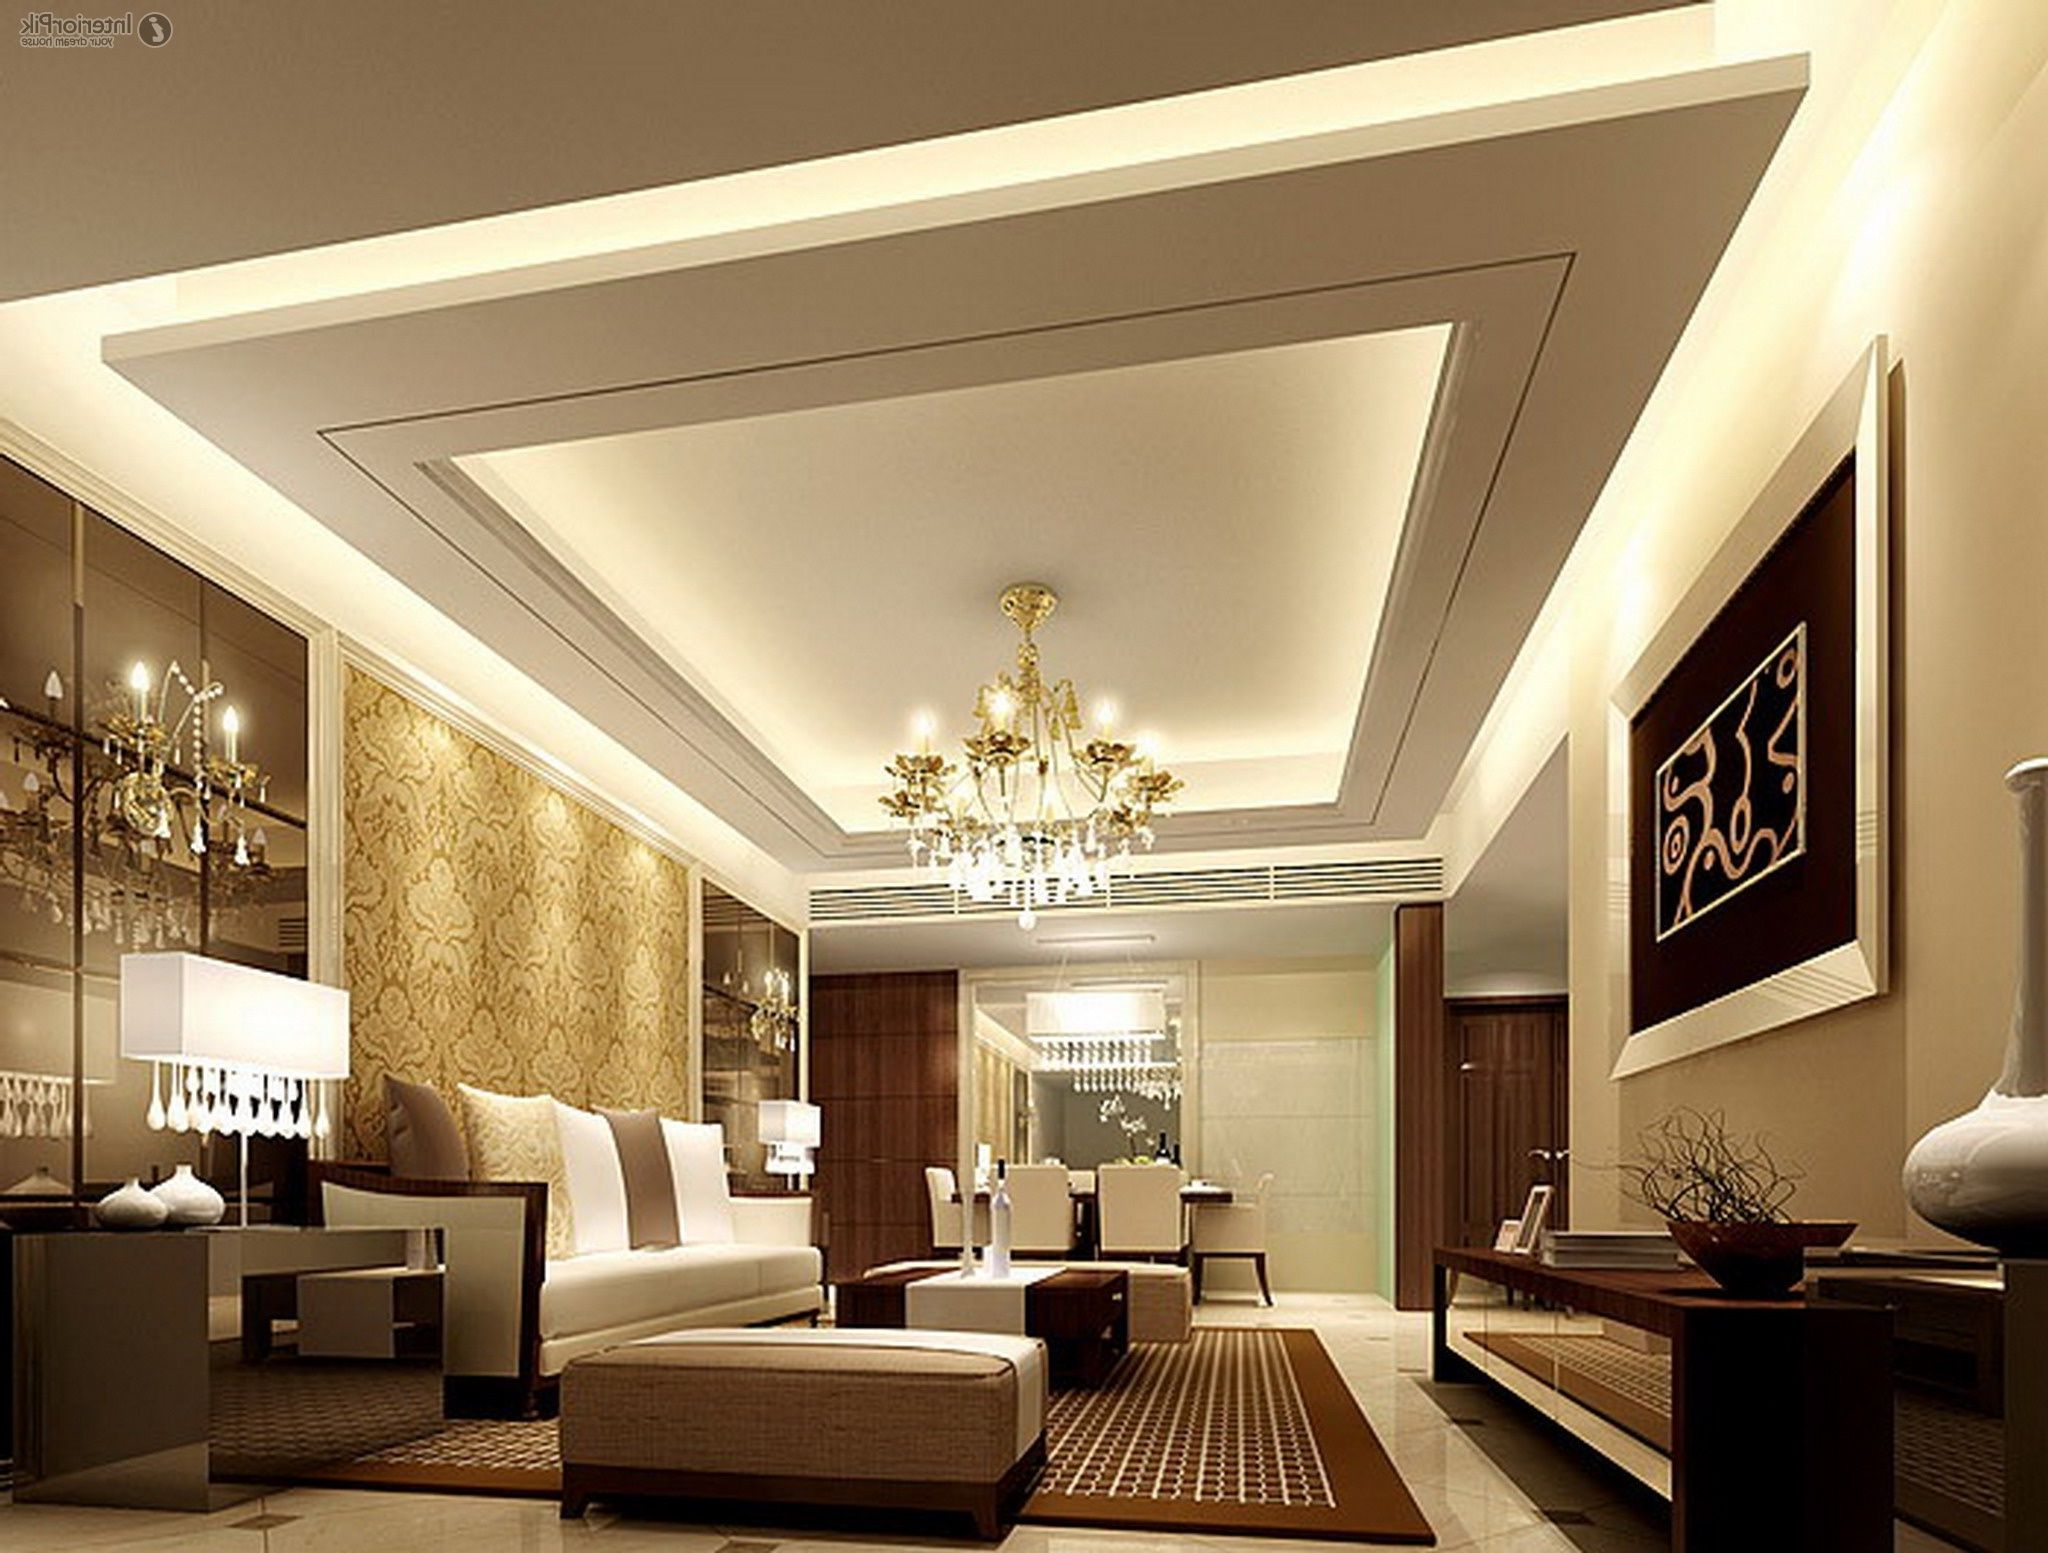 Ceiling Designs for Your Living Room  Room decor Ceilings and Room